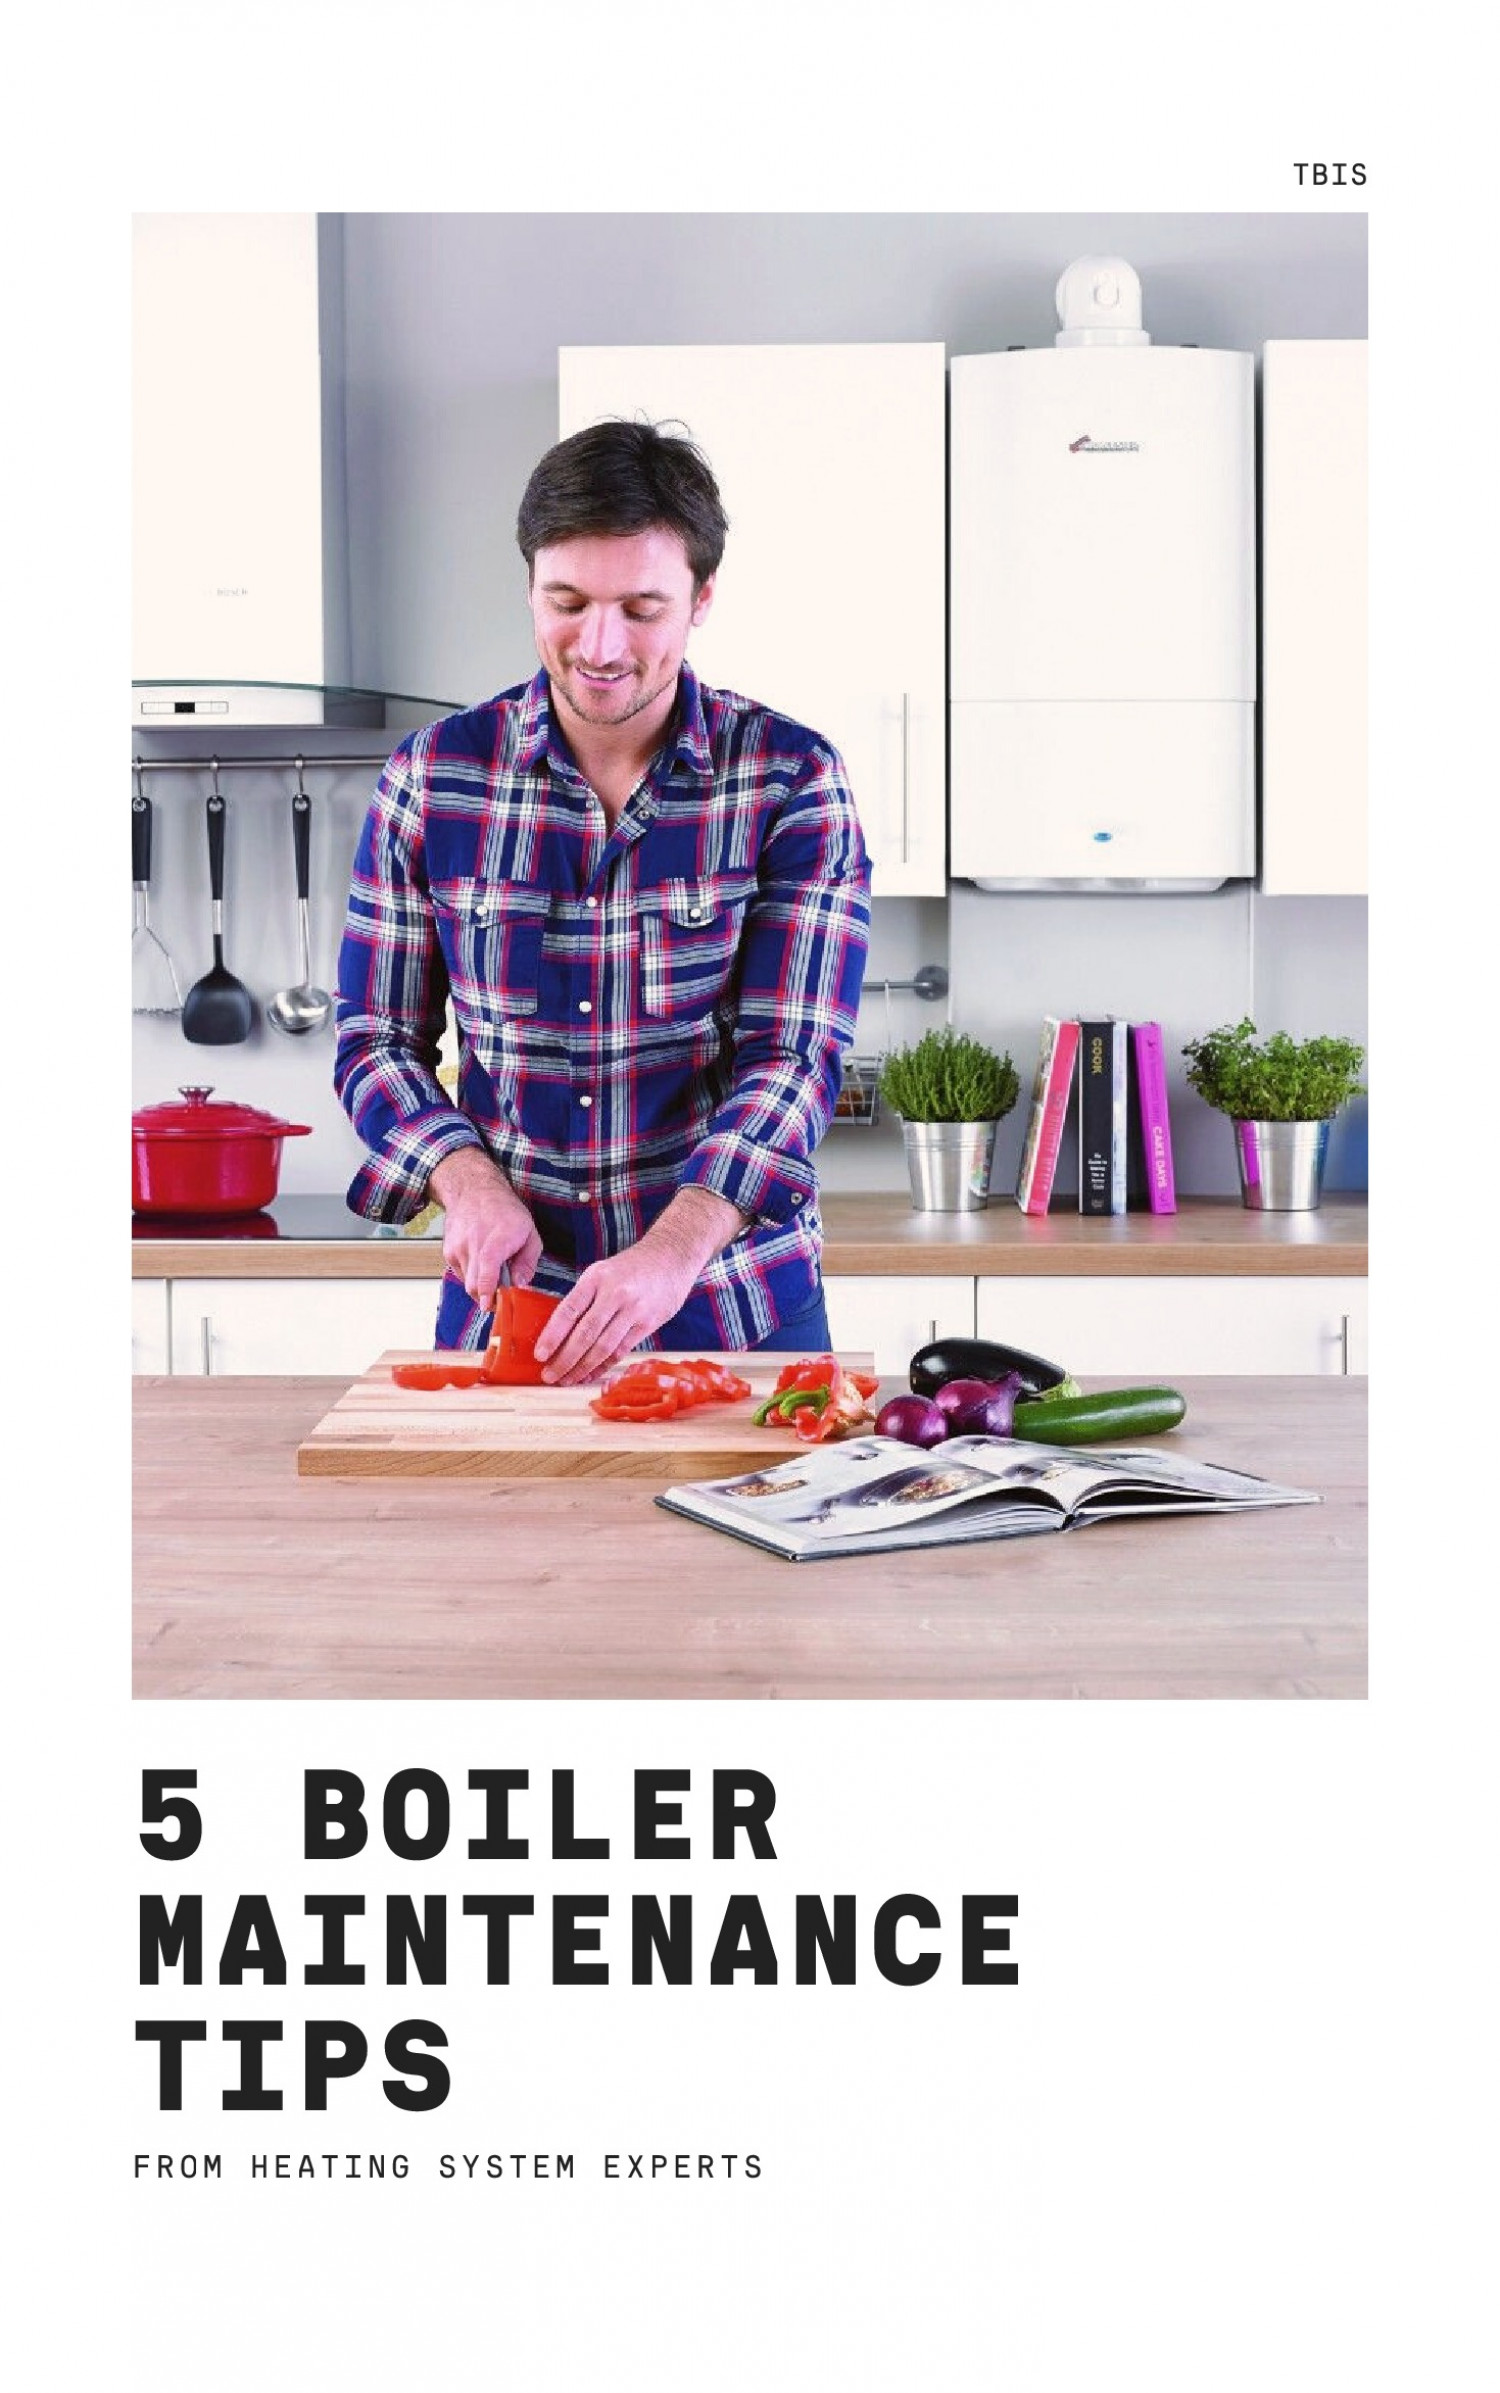 5 Boiler Maintenance Tips From Heating Systems Experts Infographic